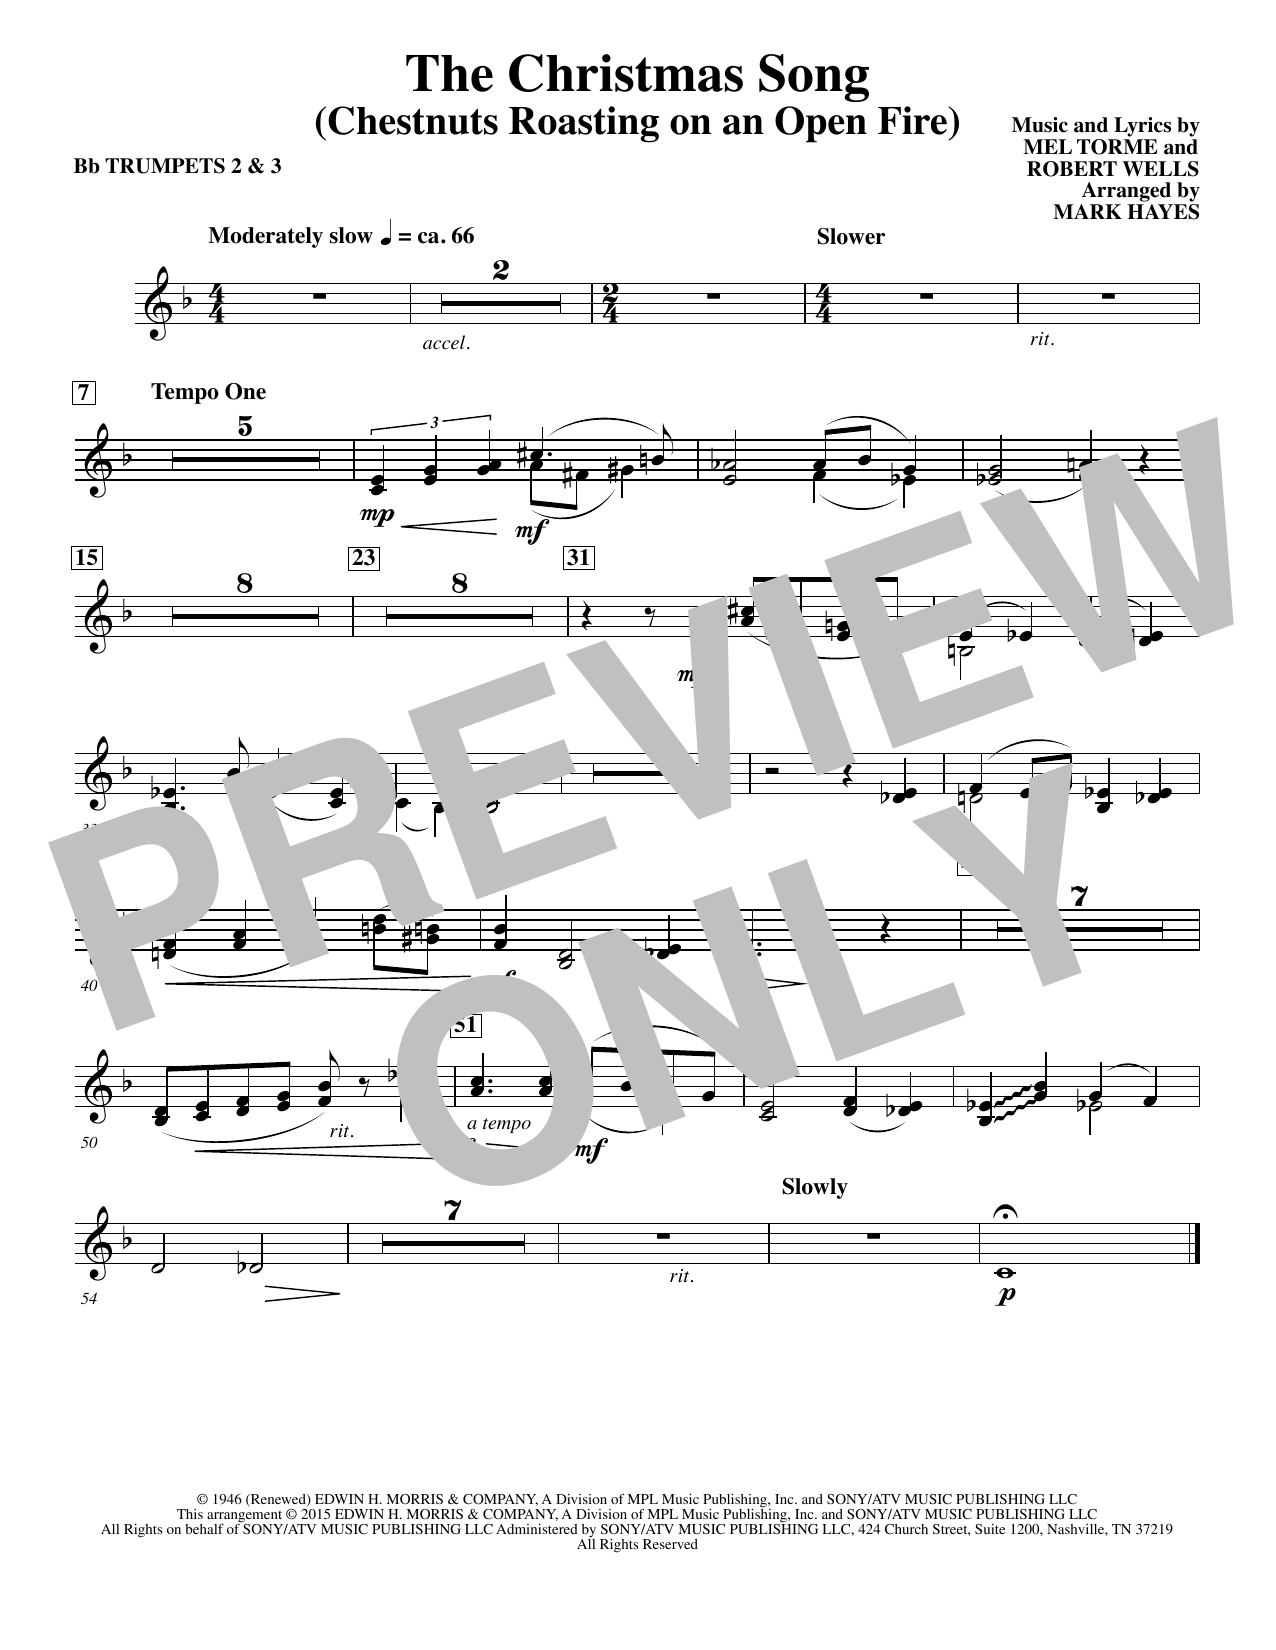 Mel Torme The Christmas Song (Chestnuts Roasting On An Open Fire) - Bb Trumpet 2,3 sheet music notes and chords. Download Printable PDF.